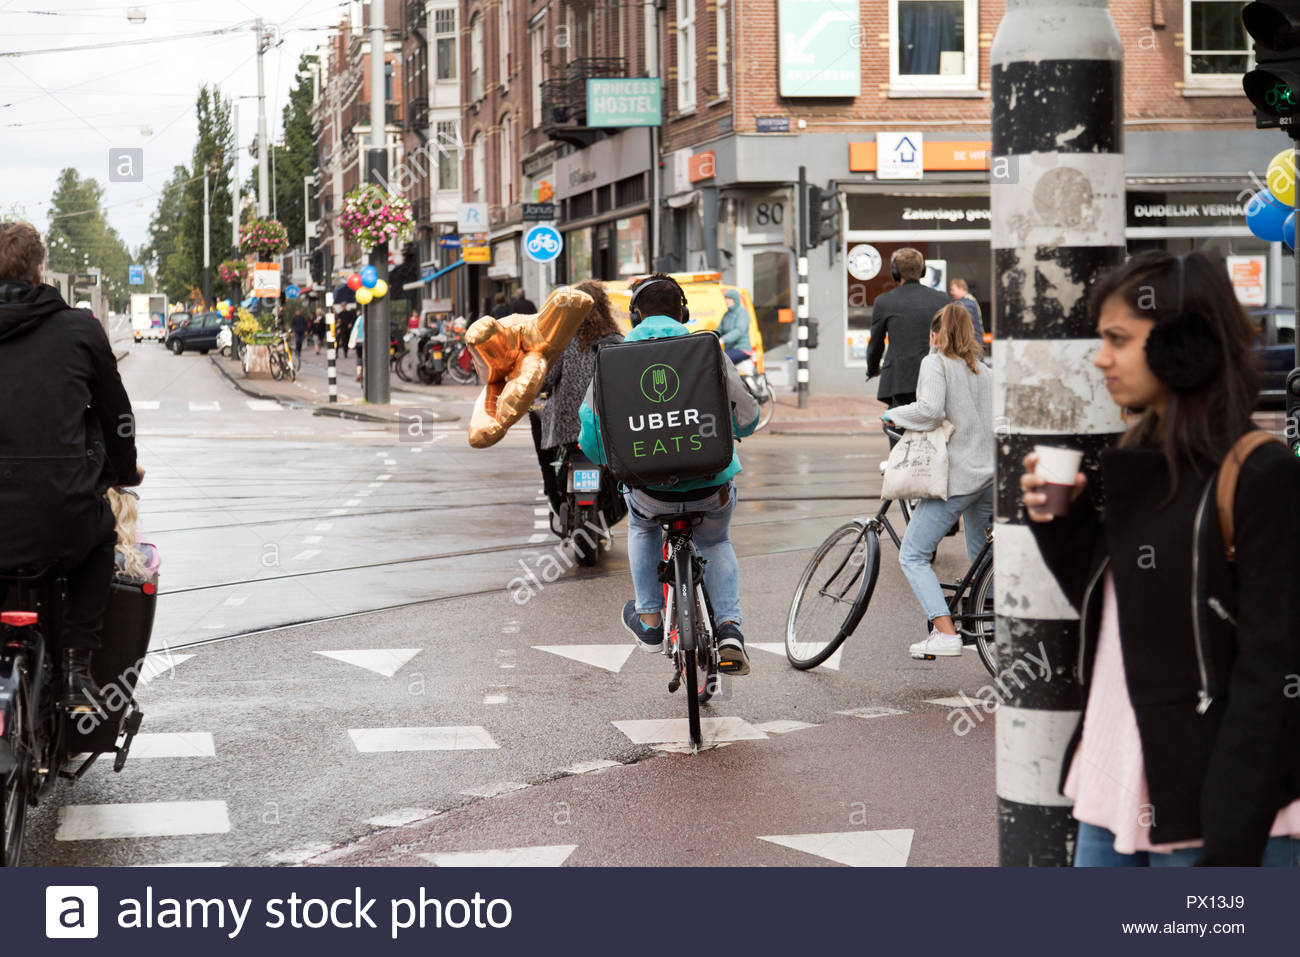 Uber Eats backpack food delivery cyclist in Amsterdam at the